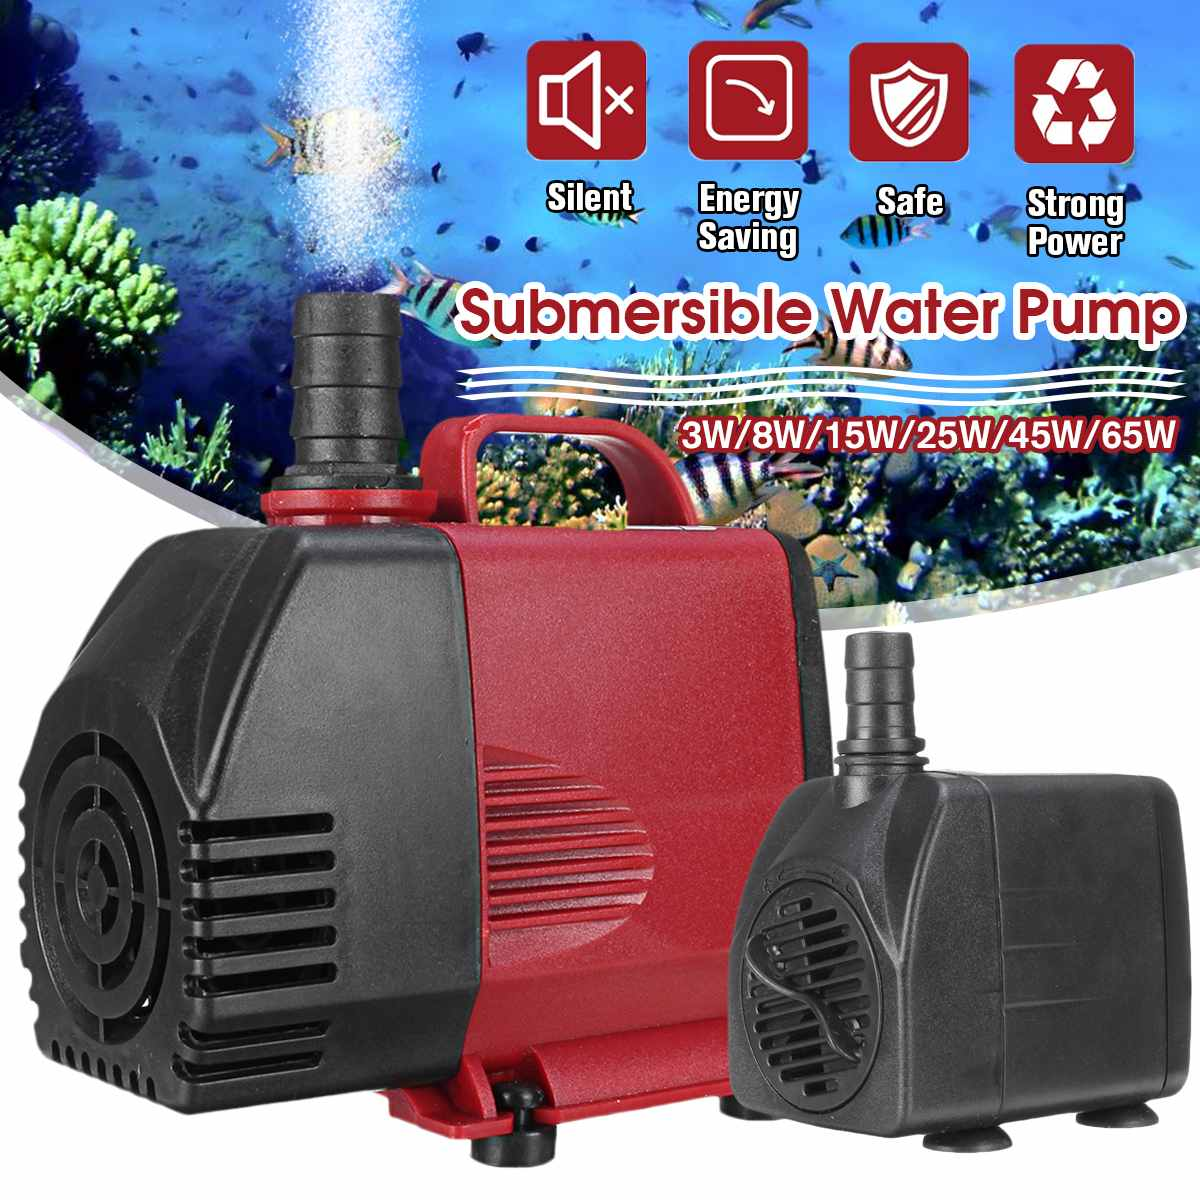 Adjustable Flow <font><b>Water</b></font> <font><b>Pump</b></font> Fish Tank Submersible Fountain Aquarium Pond Ultra-Quiet Silent <font><b>Pump</b></font> 3/8/15/25/45/65W 50Hz image